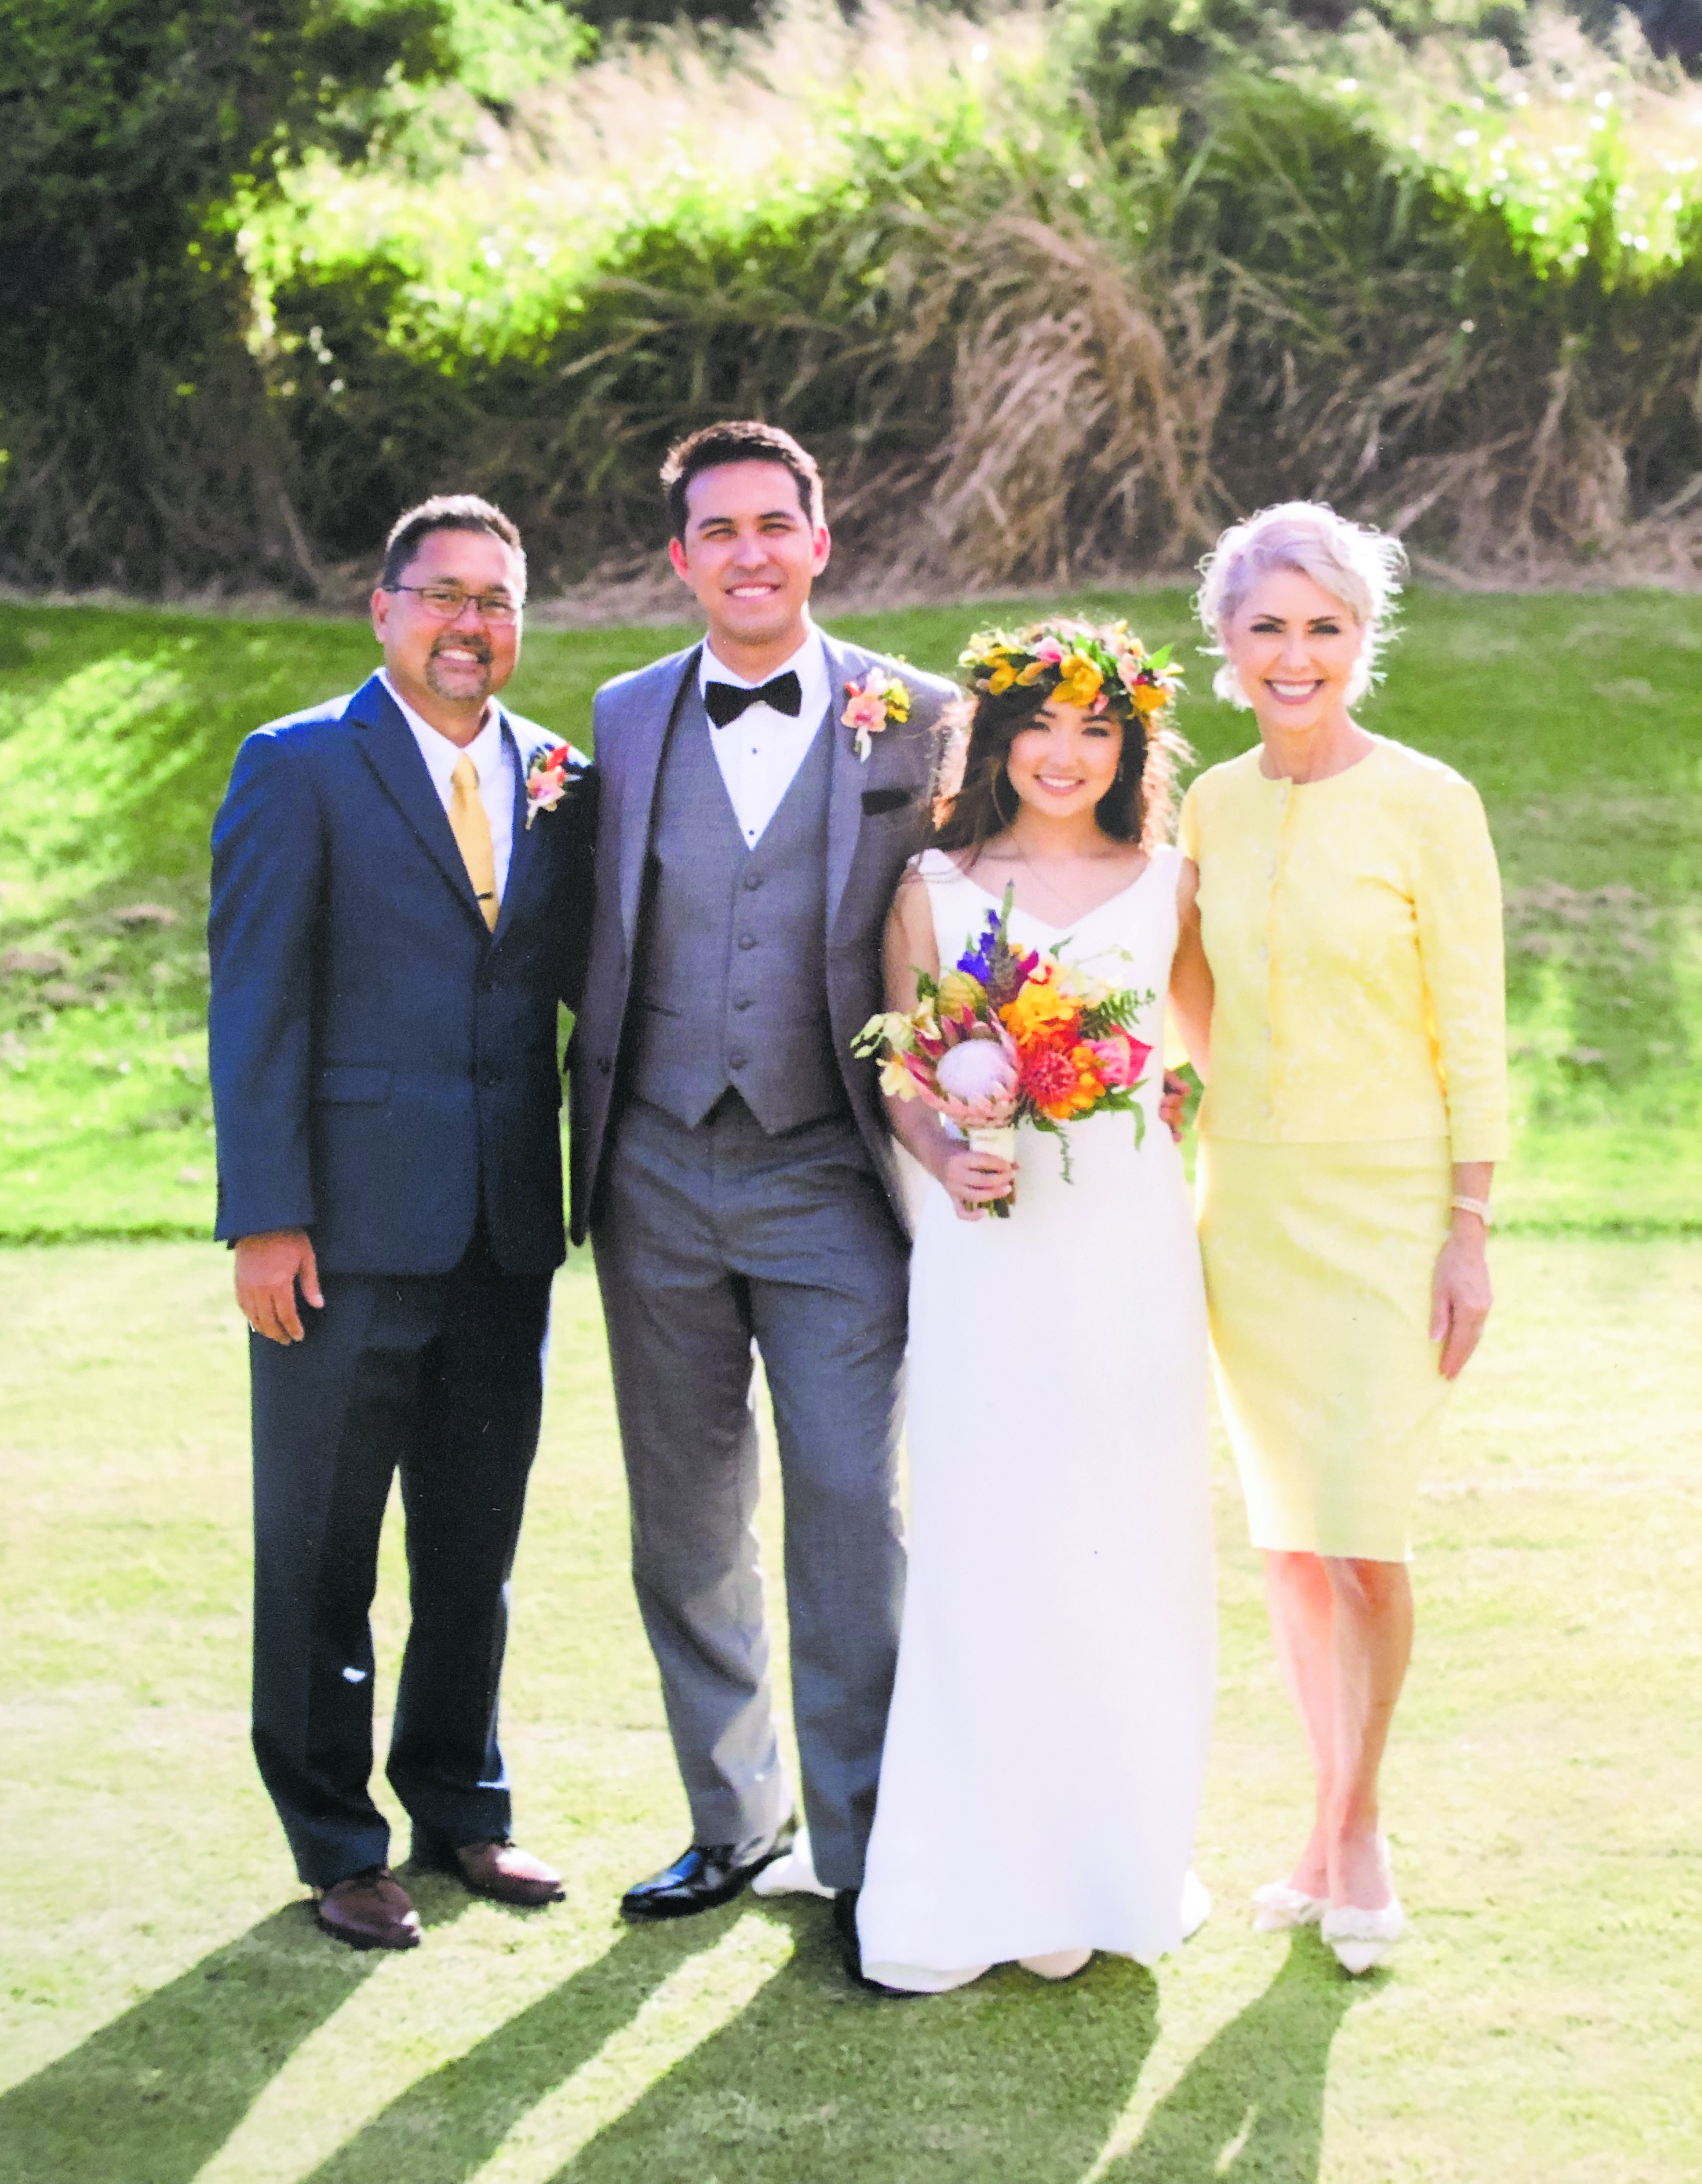 Tom (far left) and Rae (far right) Seki, with their daughter, Tia who married Luke Gage this past May. Tia was the Maui Sons and Daughters of Nisei Veterans Chrysanthemum Queen in 2012.